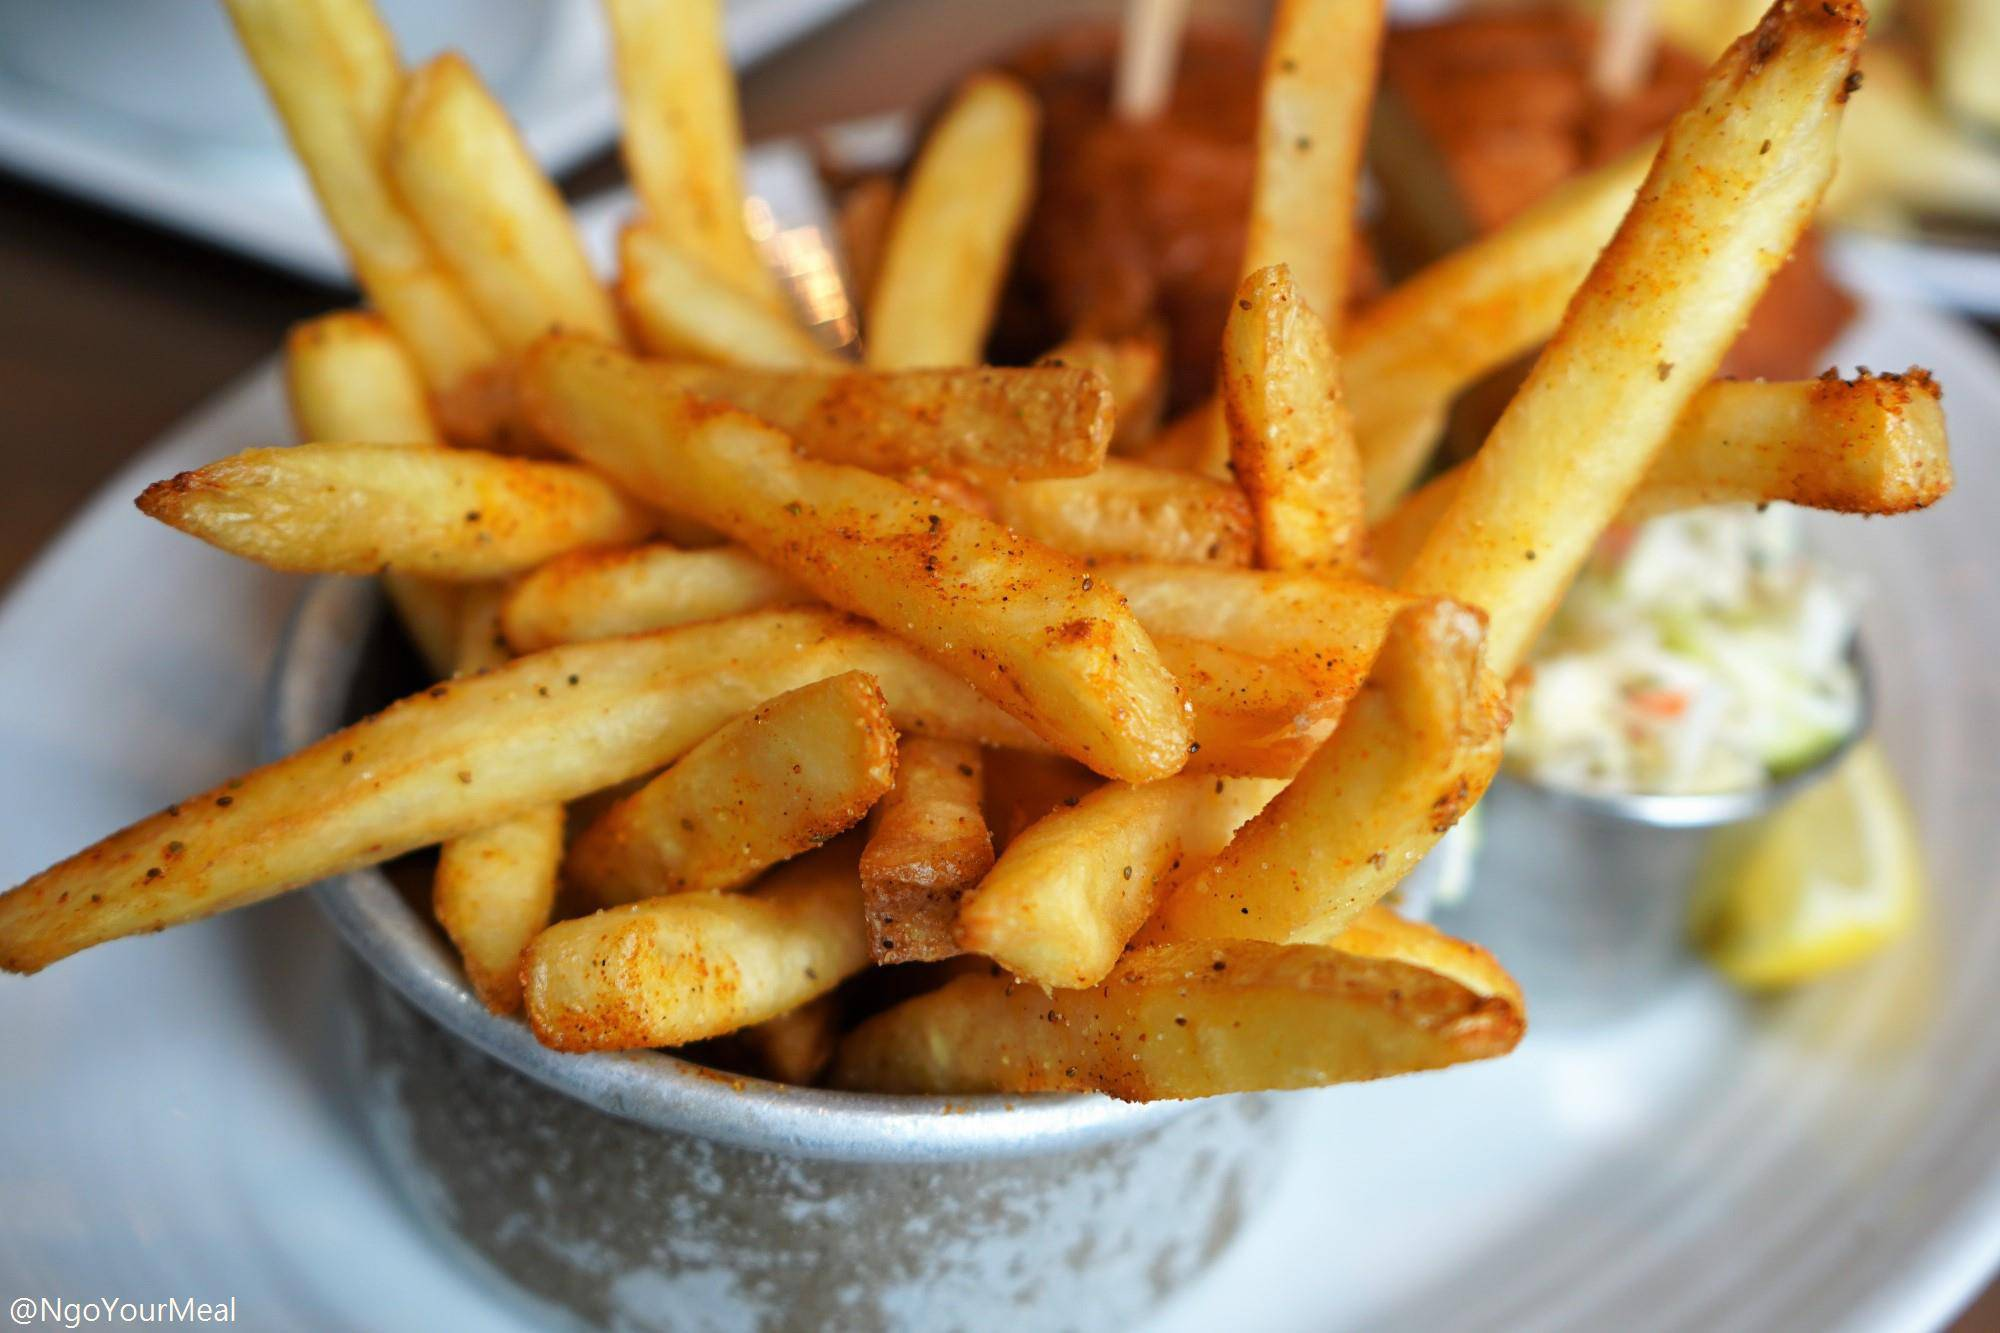 Old Bay Fries at Island Creek Oyster Bar in Boston